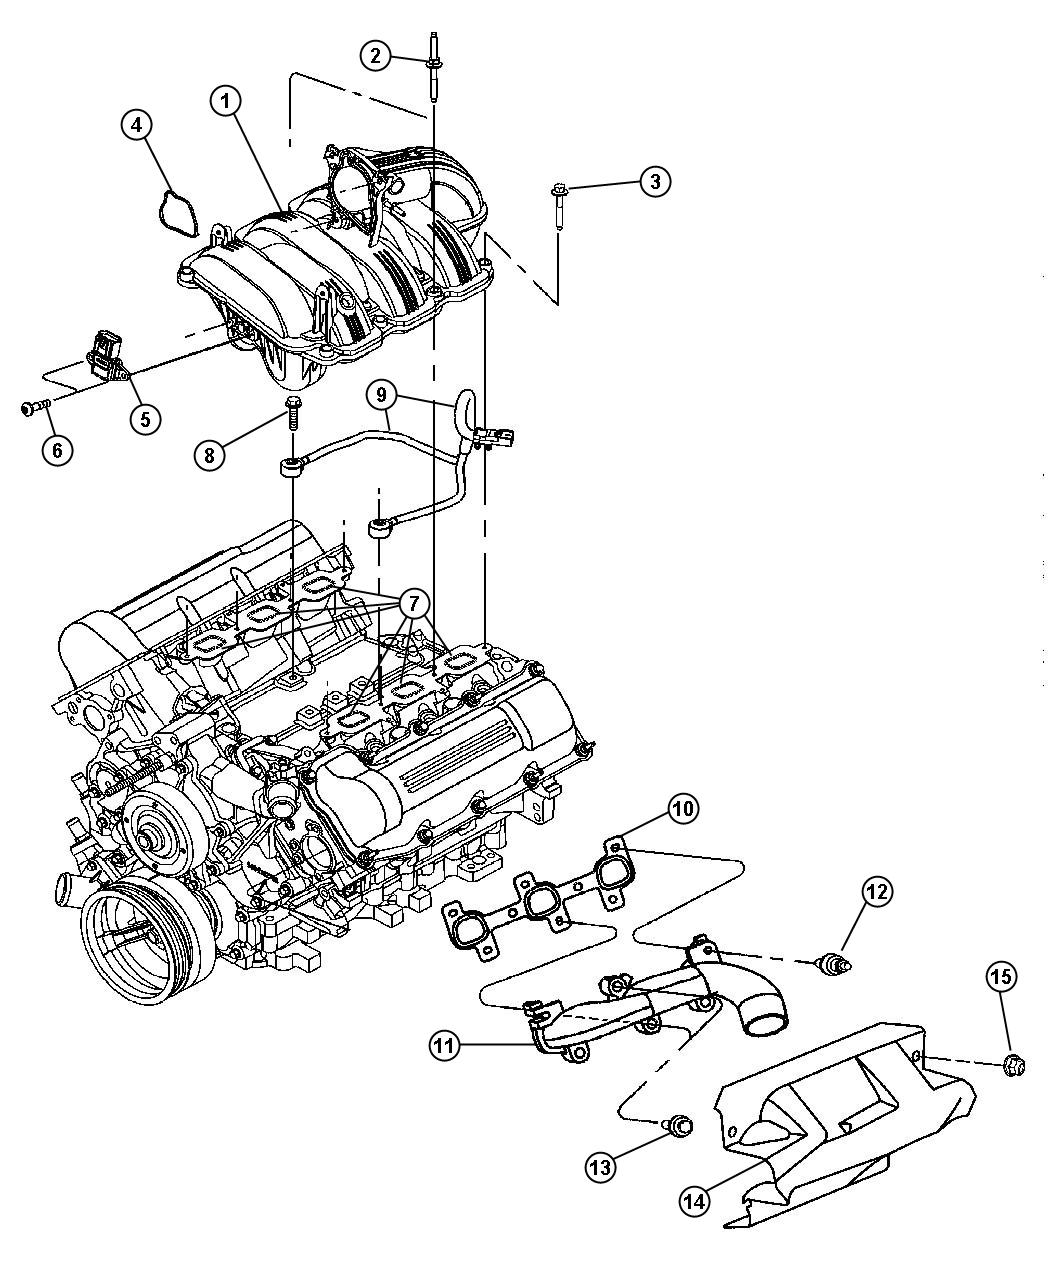 Wiring Diagram For Stereo Part # P56038589an Daimler Chrysler